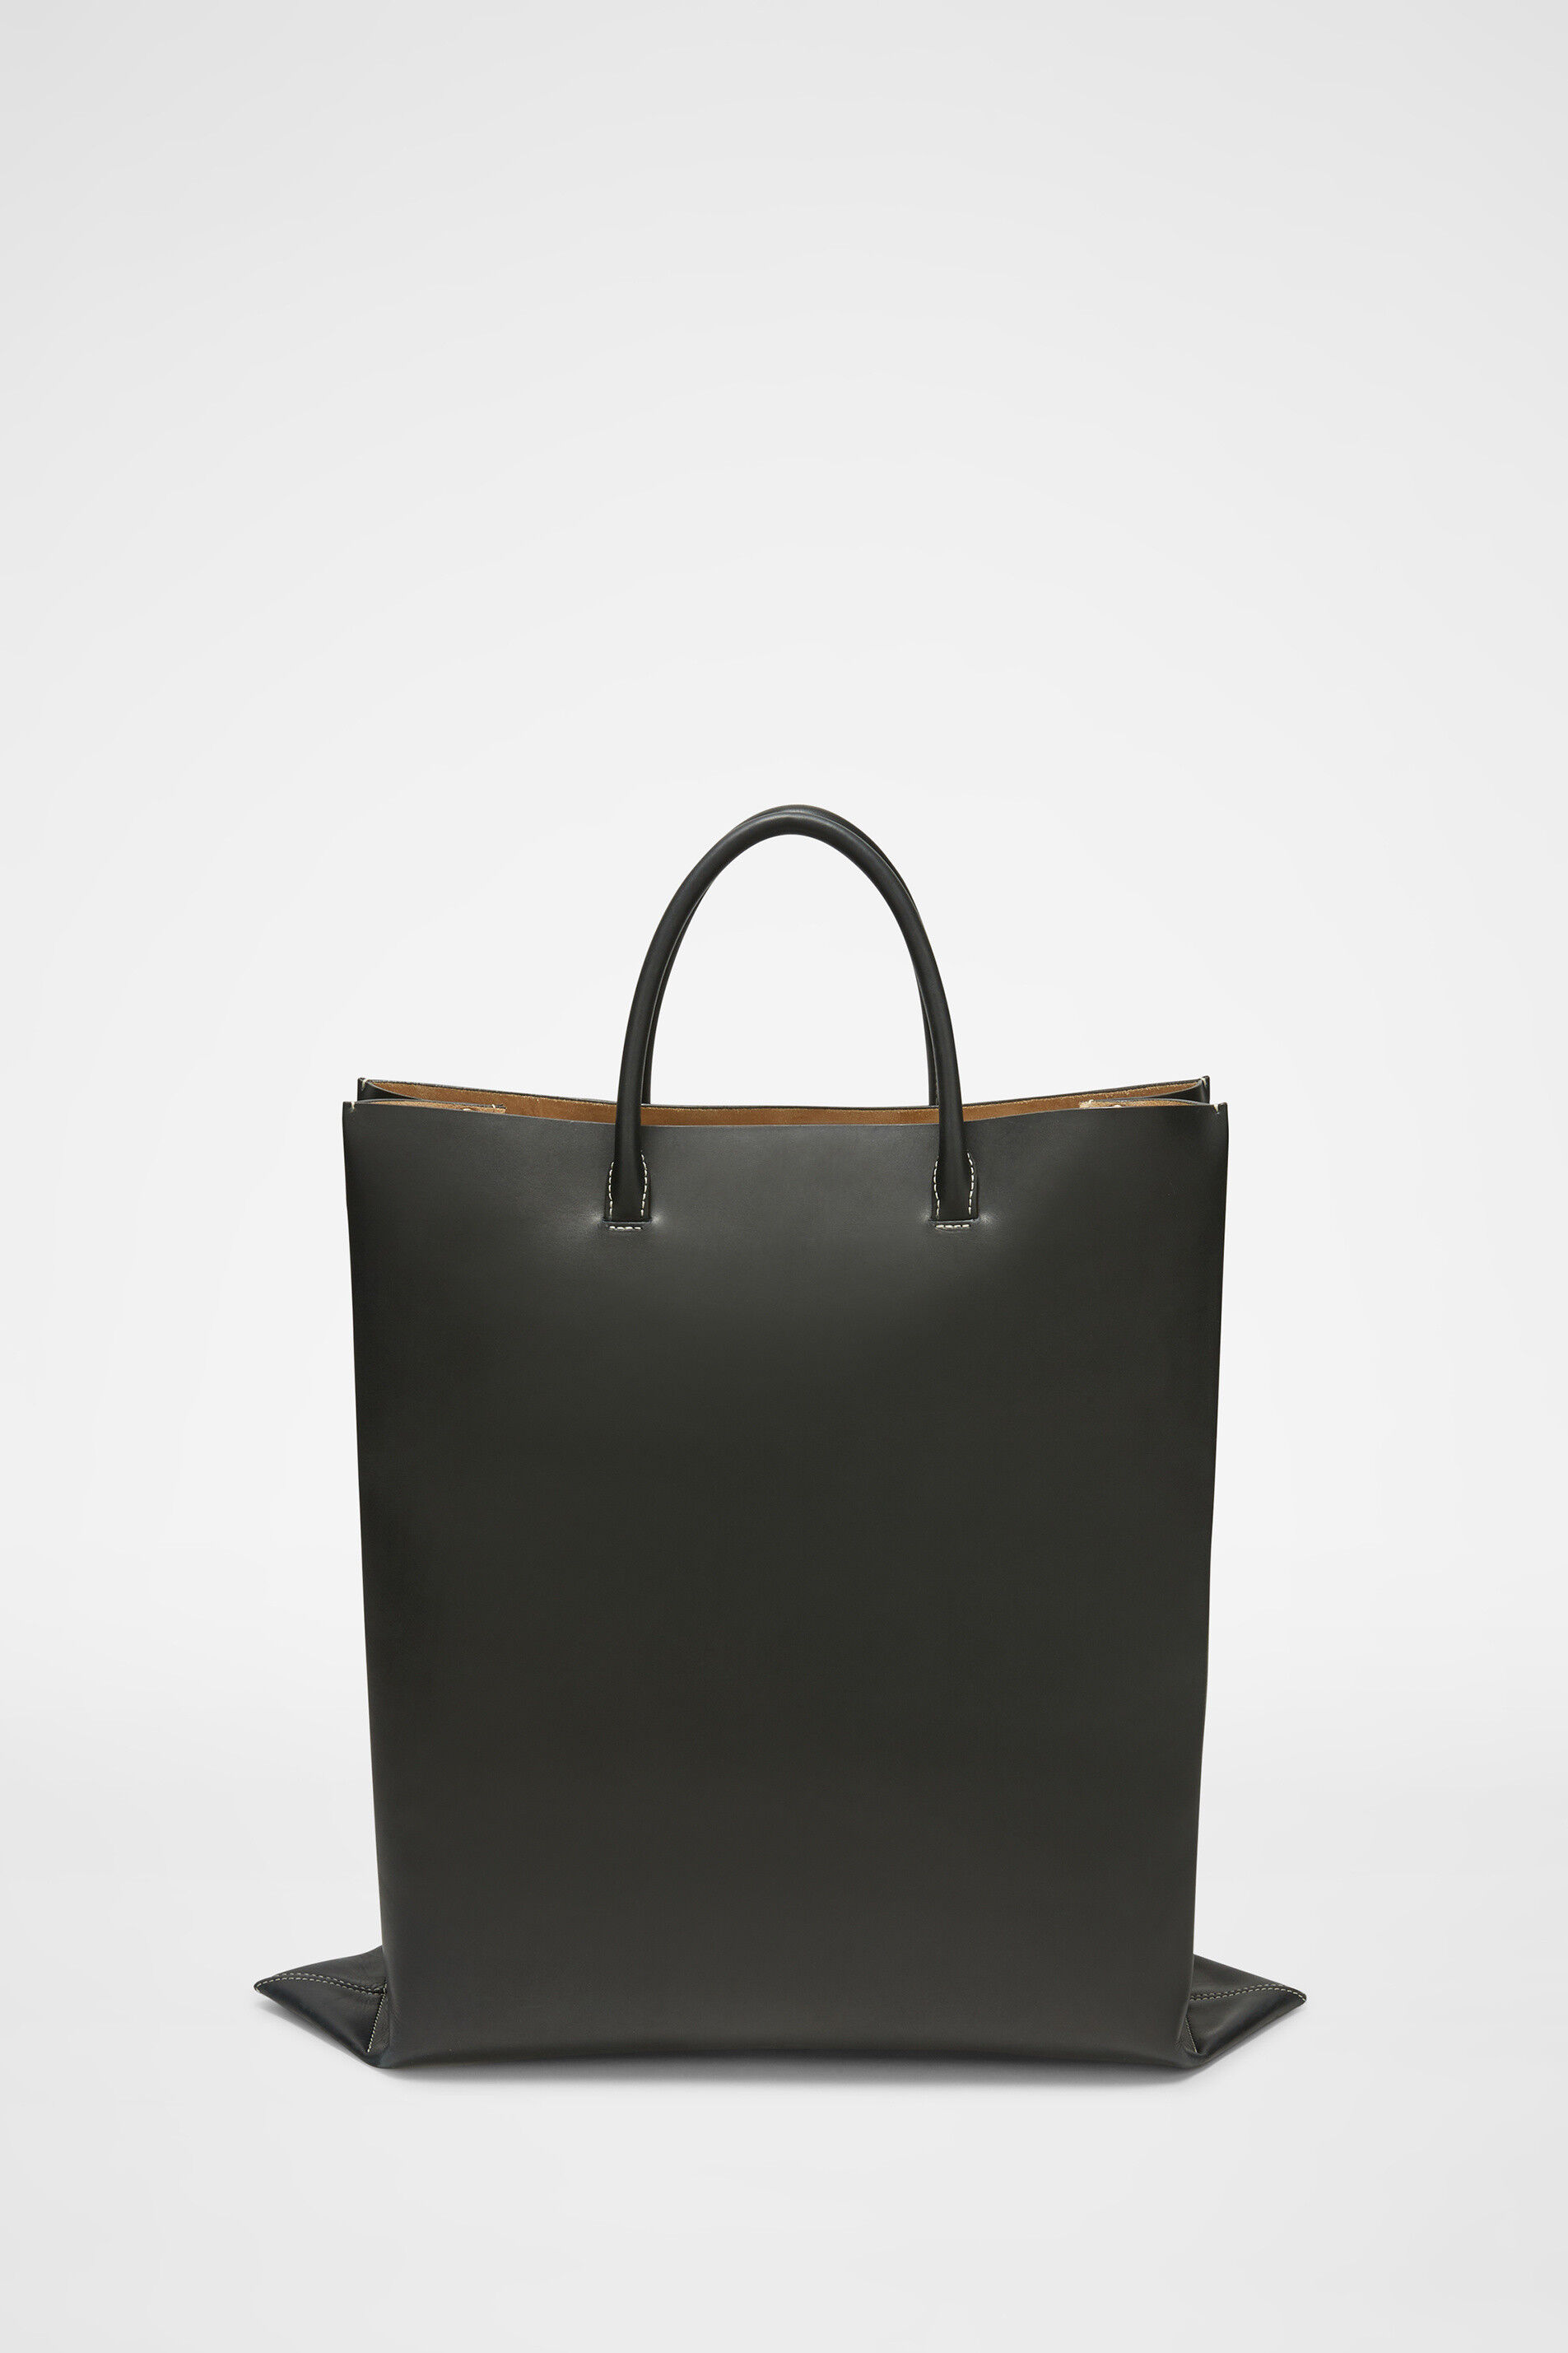 Tote Medium, black, large